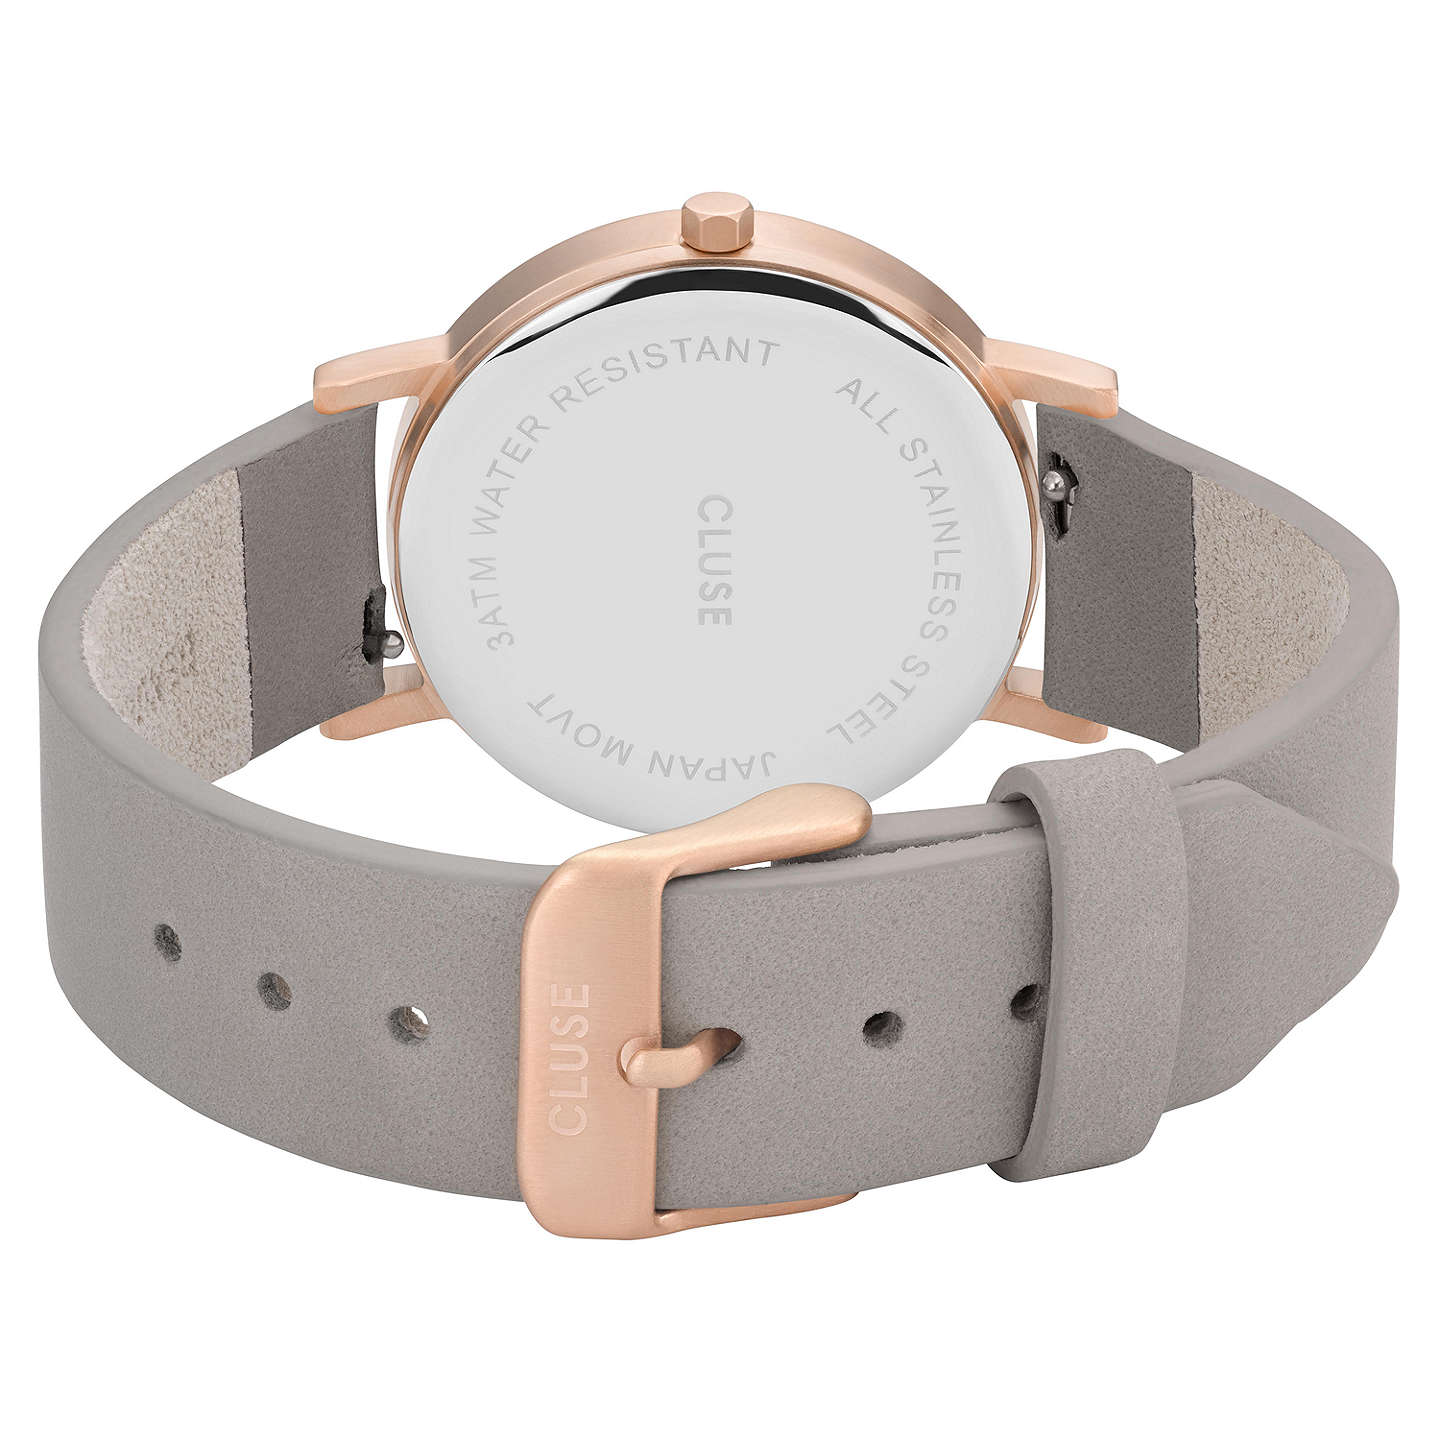 BuyCLUSE CL40103 Women's La Roche Petite Leather Strap Watch, Grey/White Marble Online at johnlewis.com